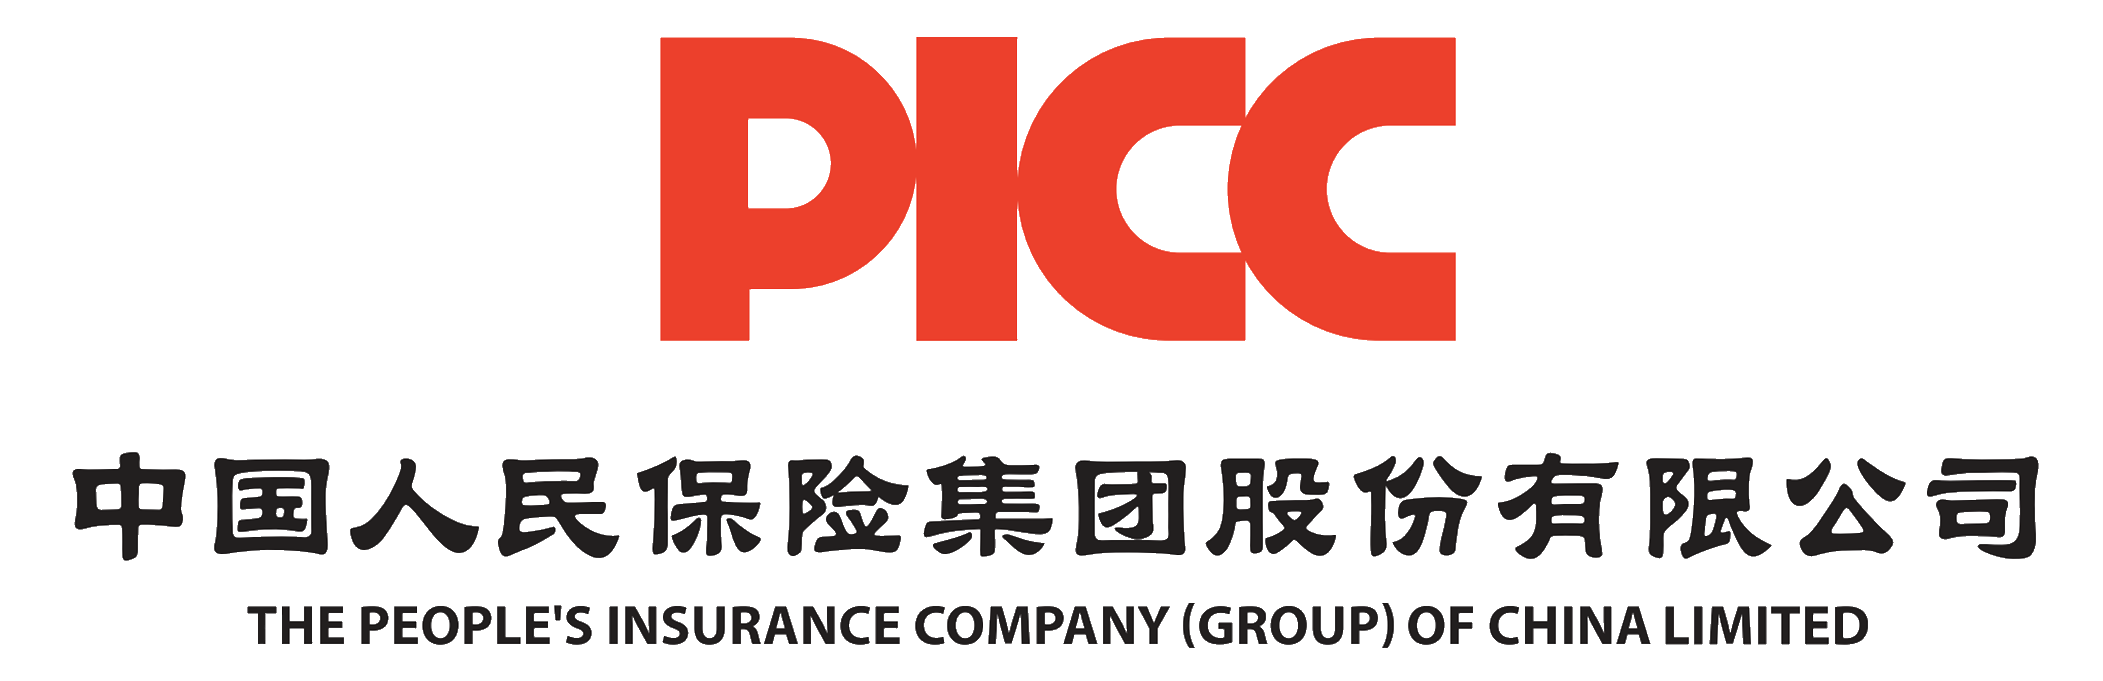 Picc Group 1339 Icon Logo